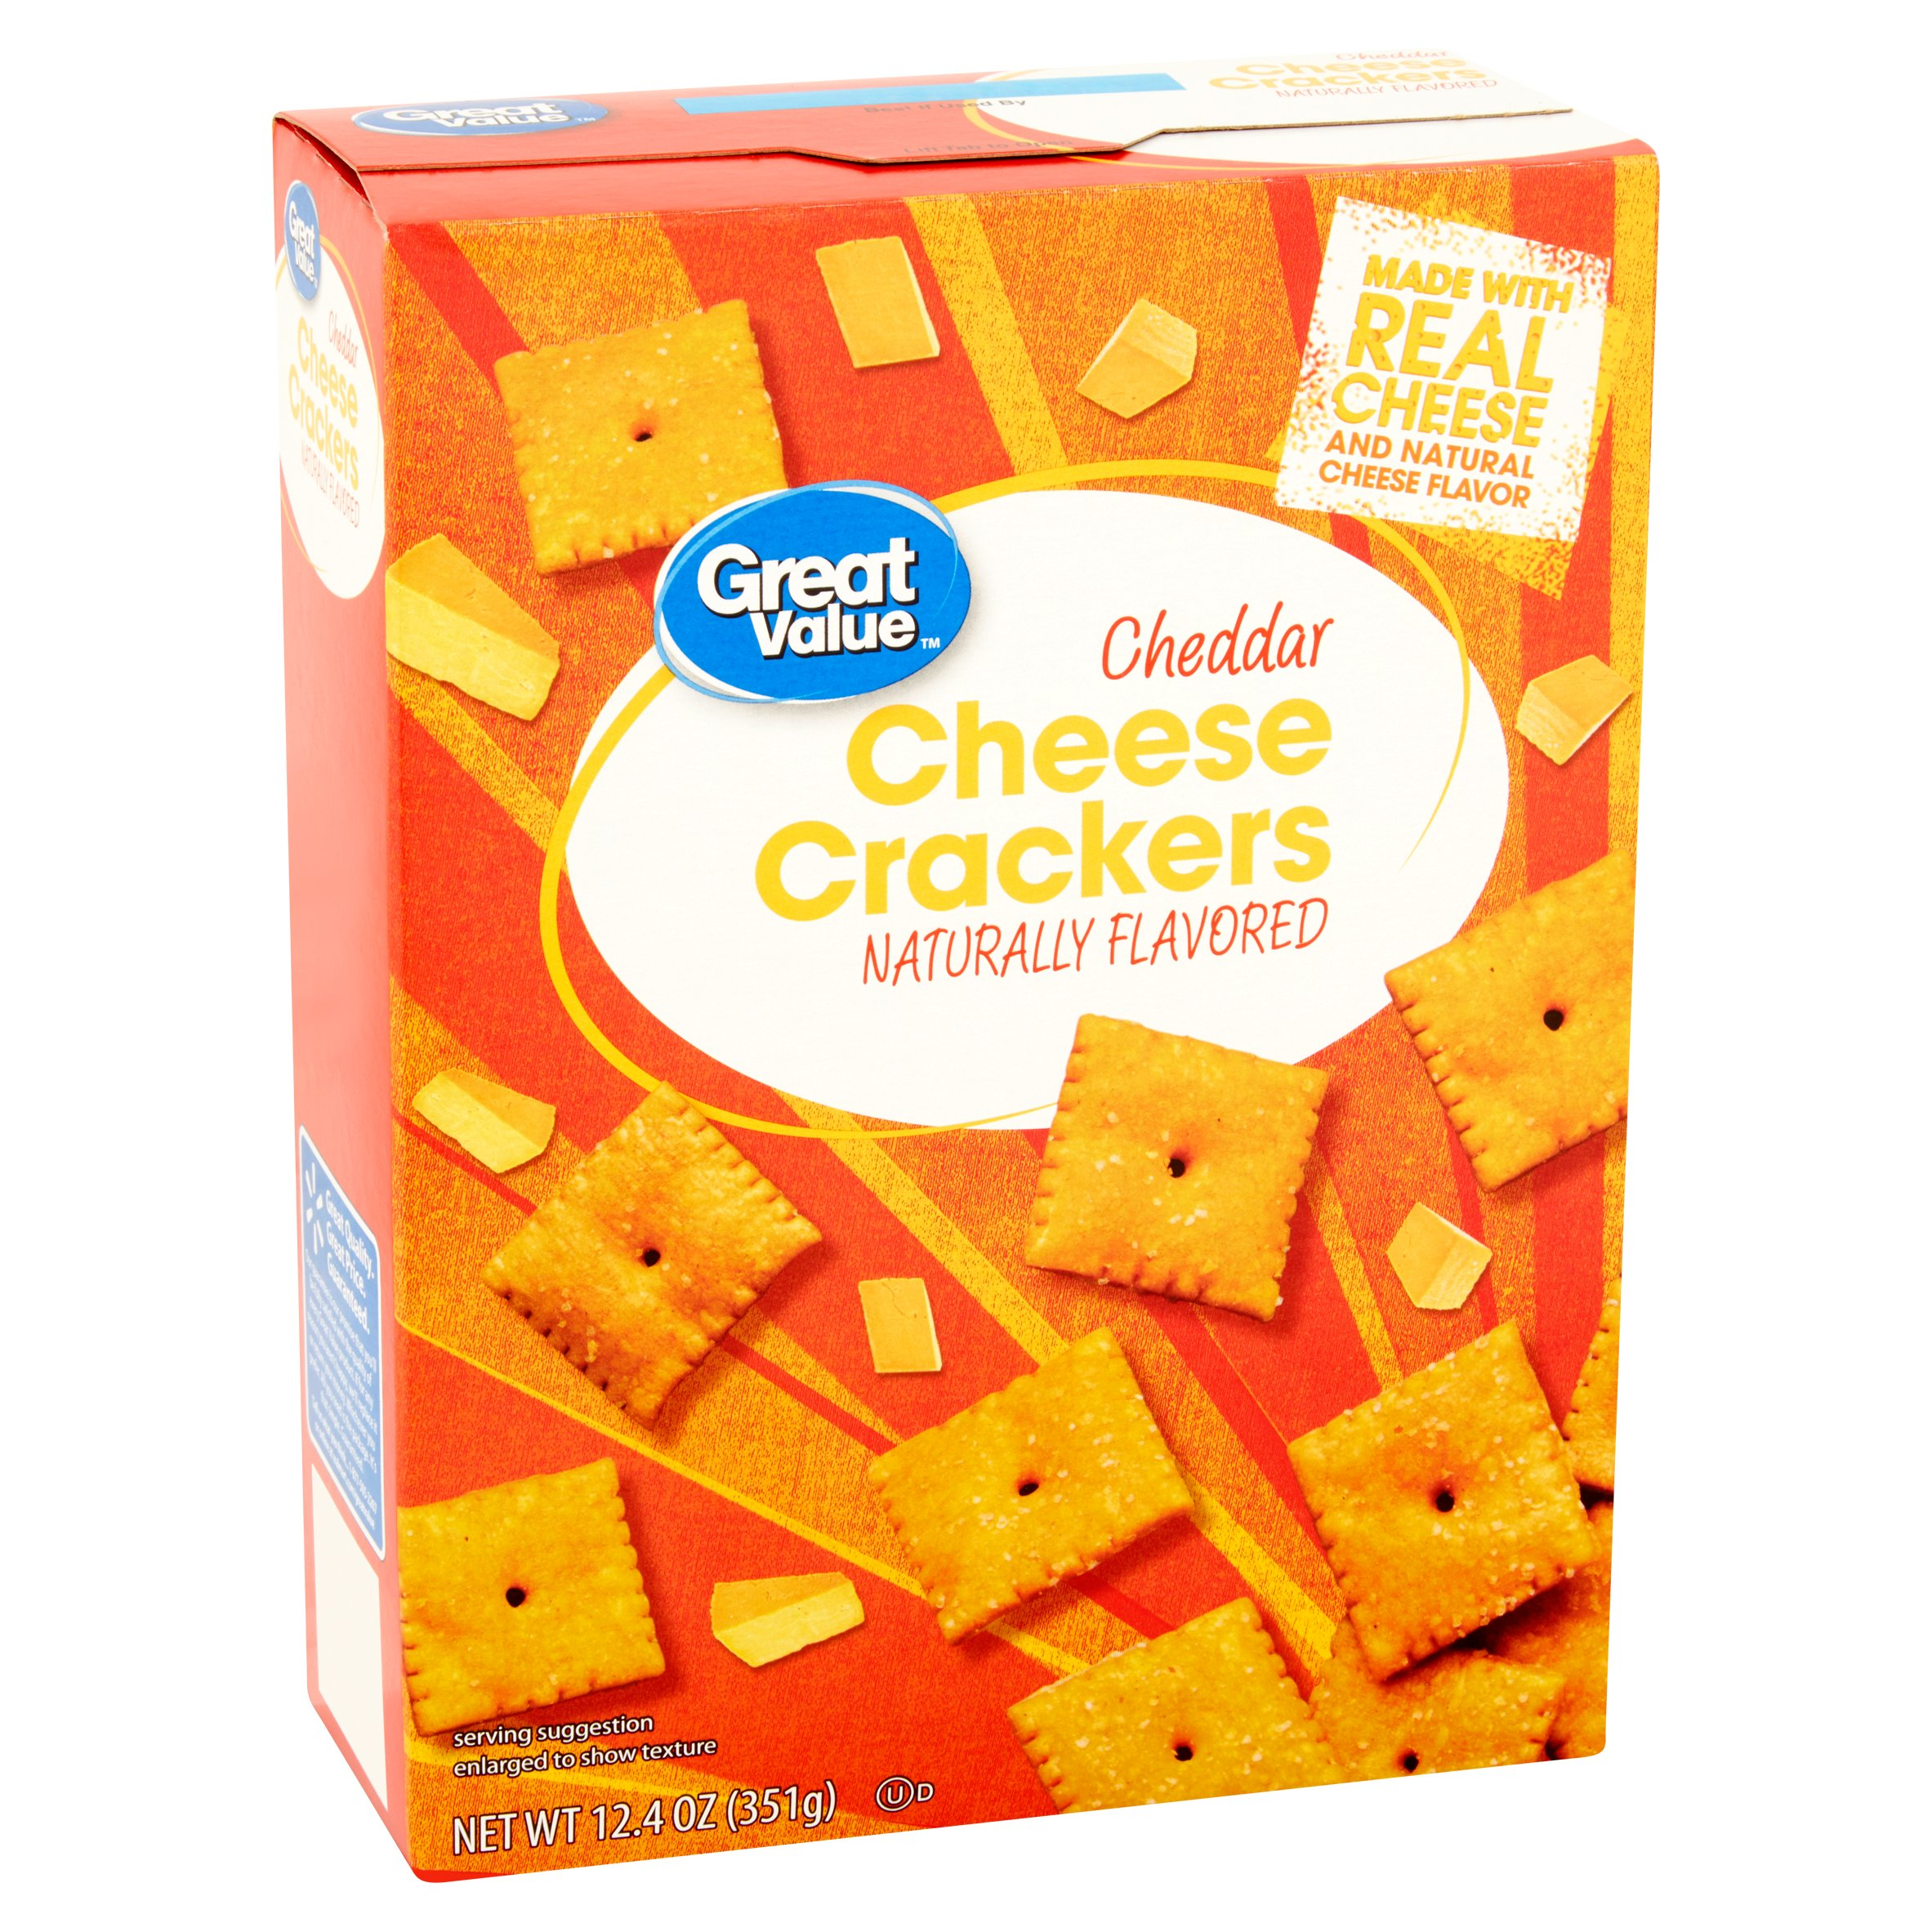 Great Value Cheddar Cheese Crackers, 12.4 oz